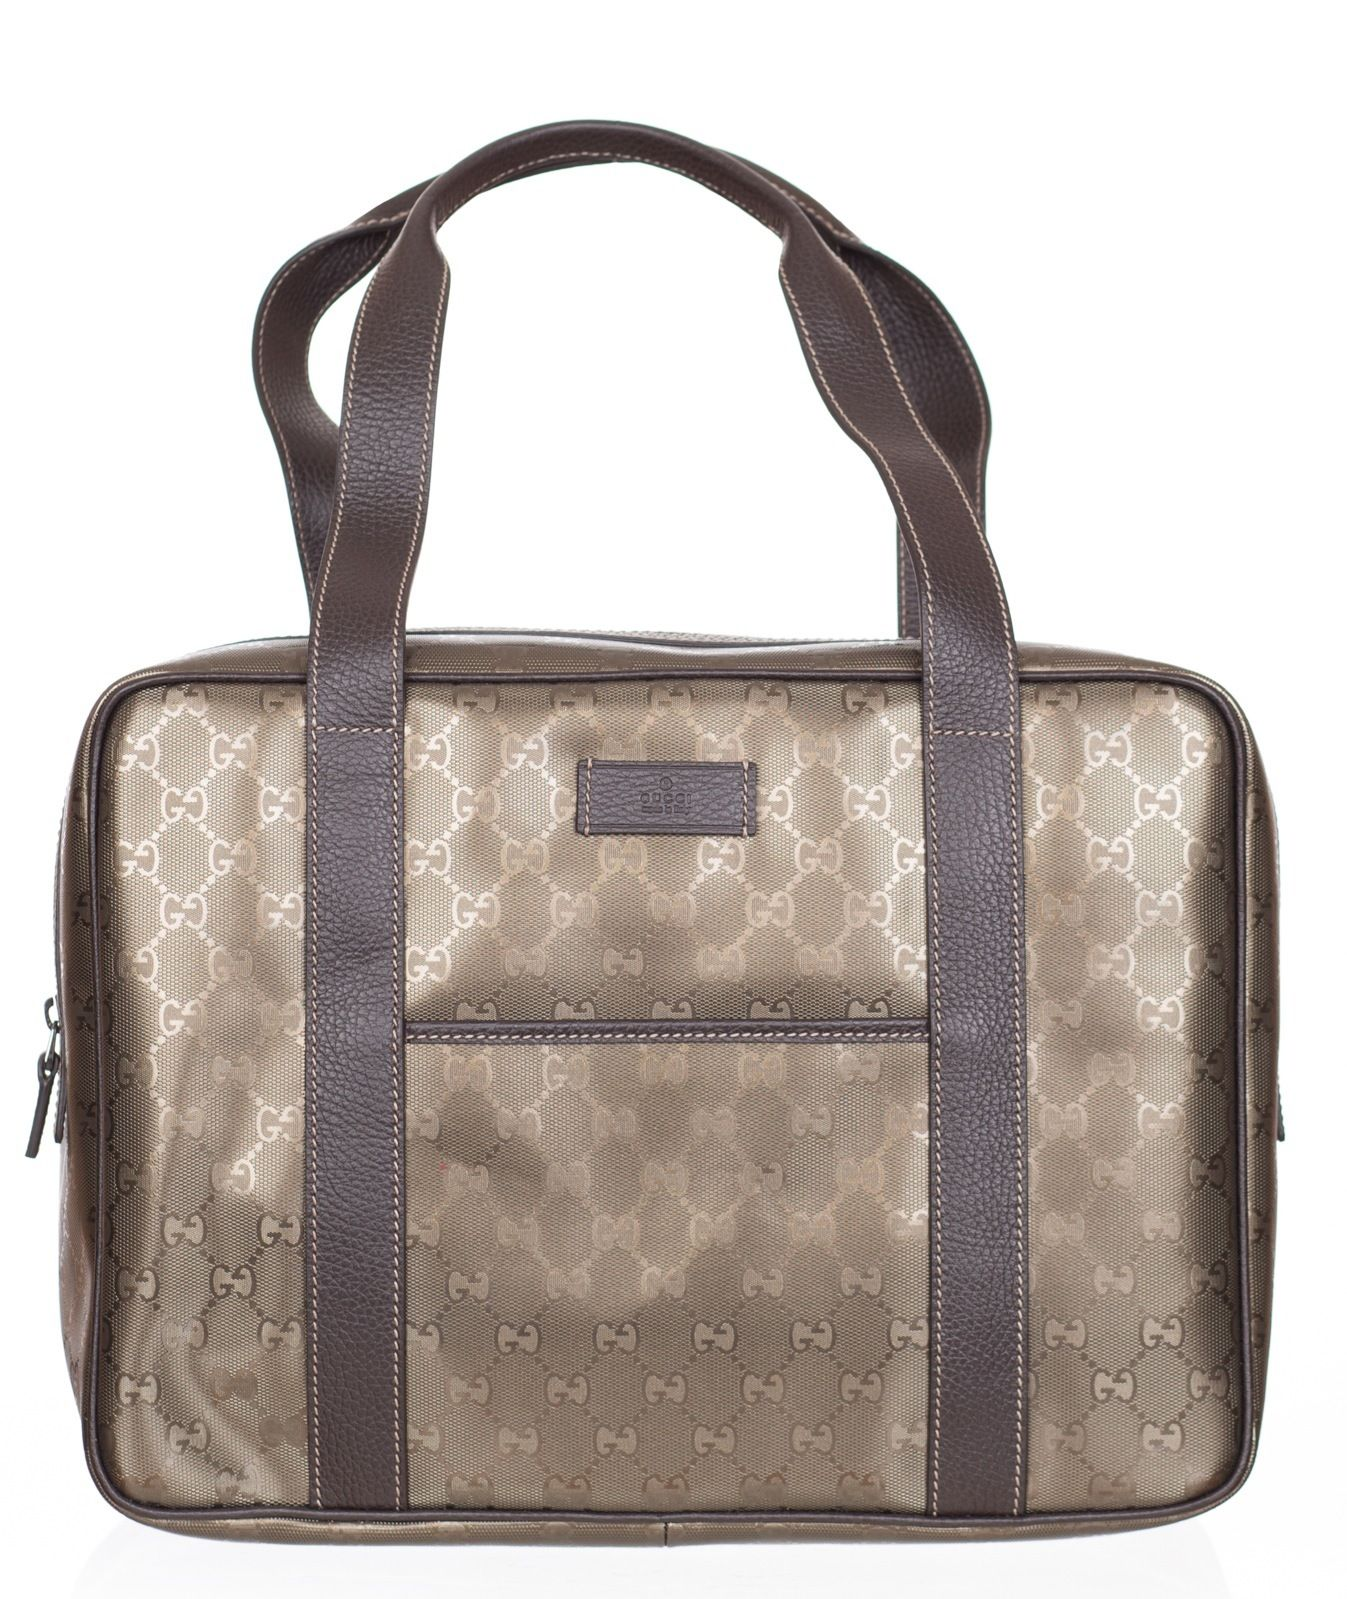 7be3bfb72 Gucci-Mens-Gold-Glossy-Guccissima-GG-Briefcase-Business-Laptop-Tote-Bag -171528182518.jpg